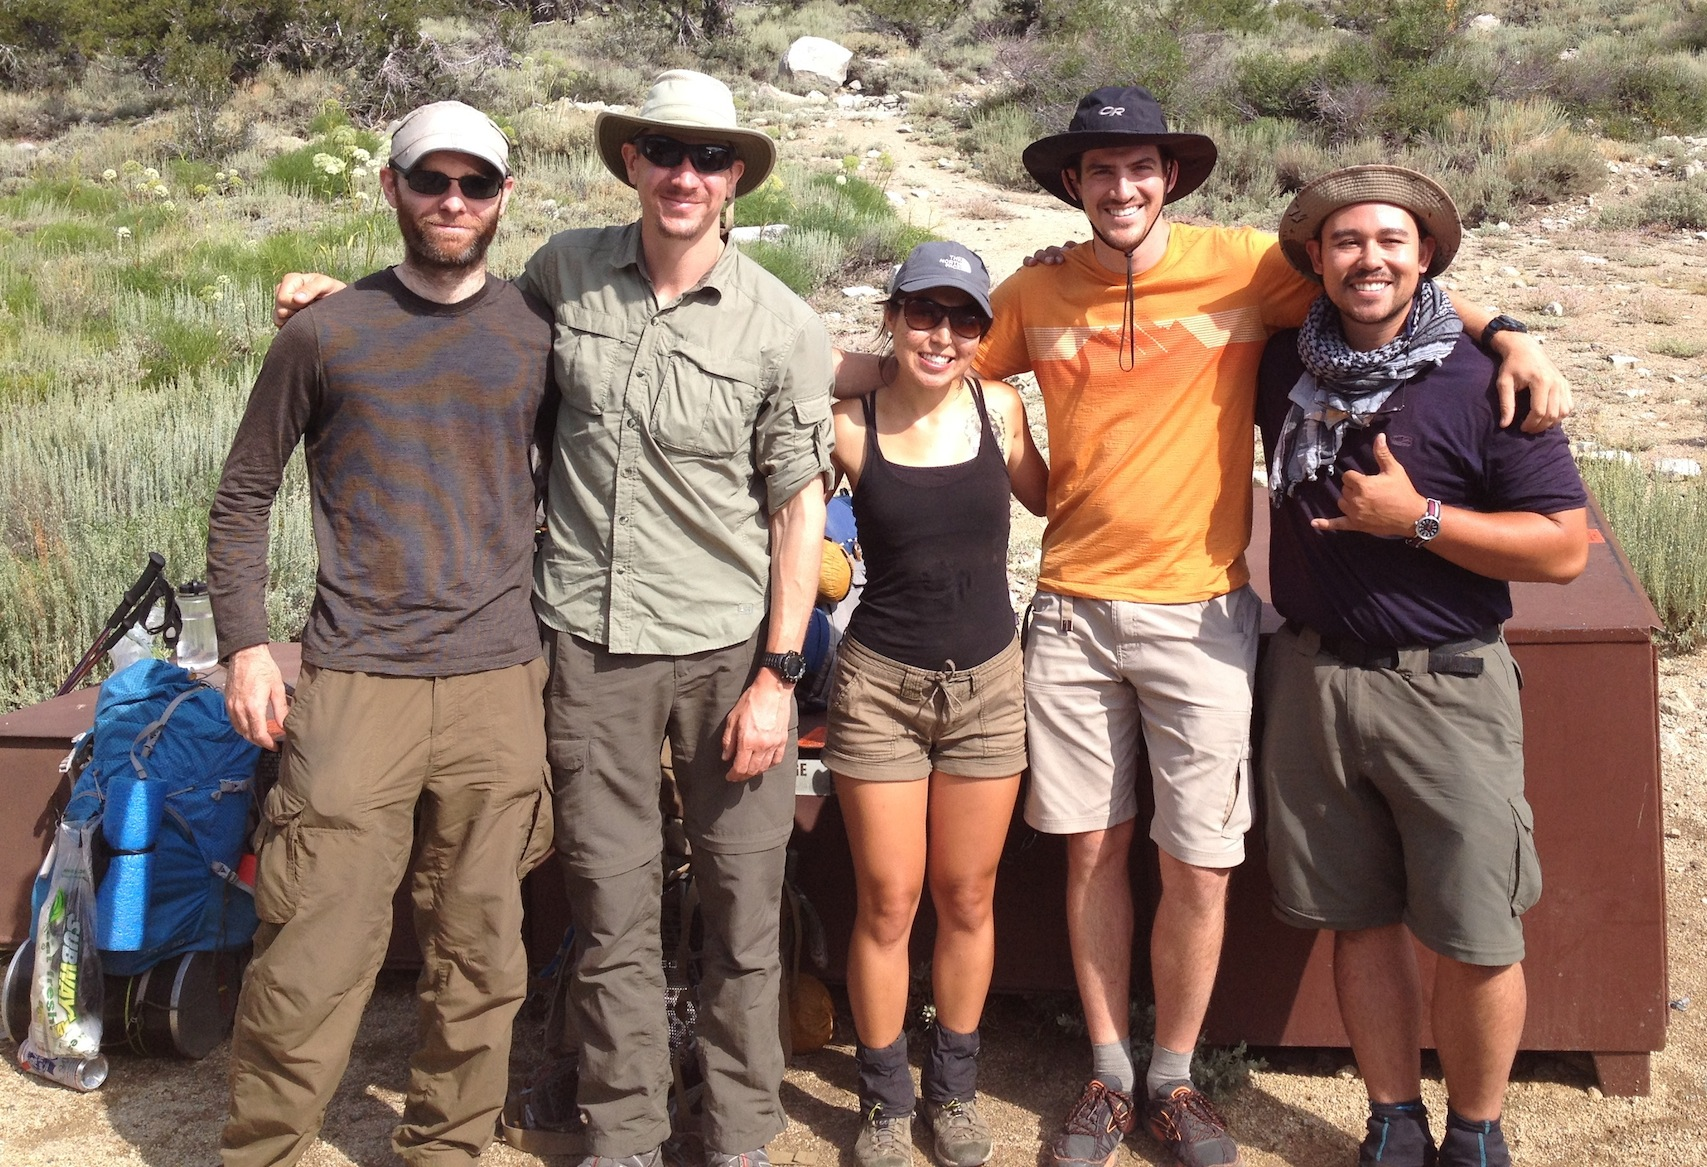 James and Josh from Austin, Texas, and SF Bay Area hikers Naomi, Jerry and Leon are ready to head over Kearsarge Pass and finish the JMT after staying at the Base Camp in Independence.